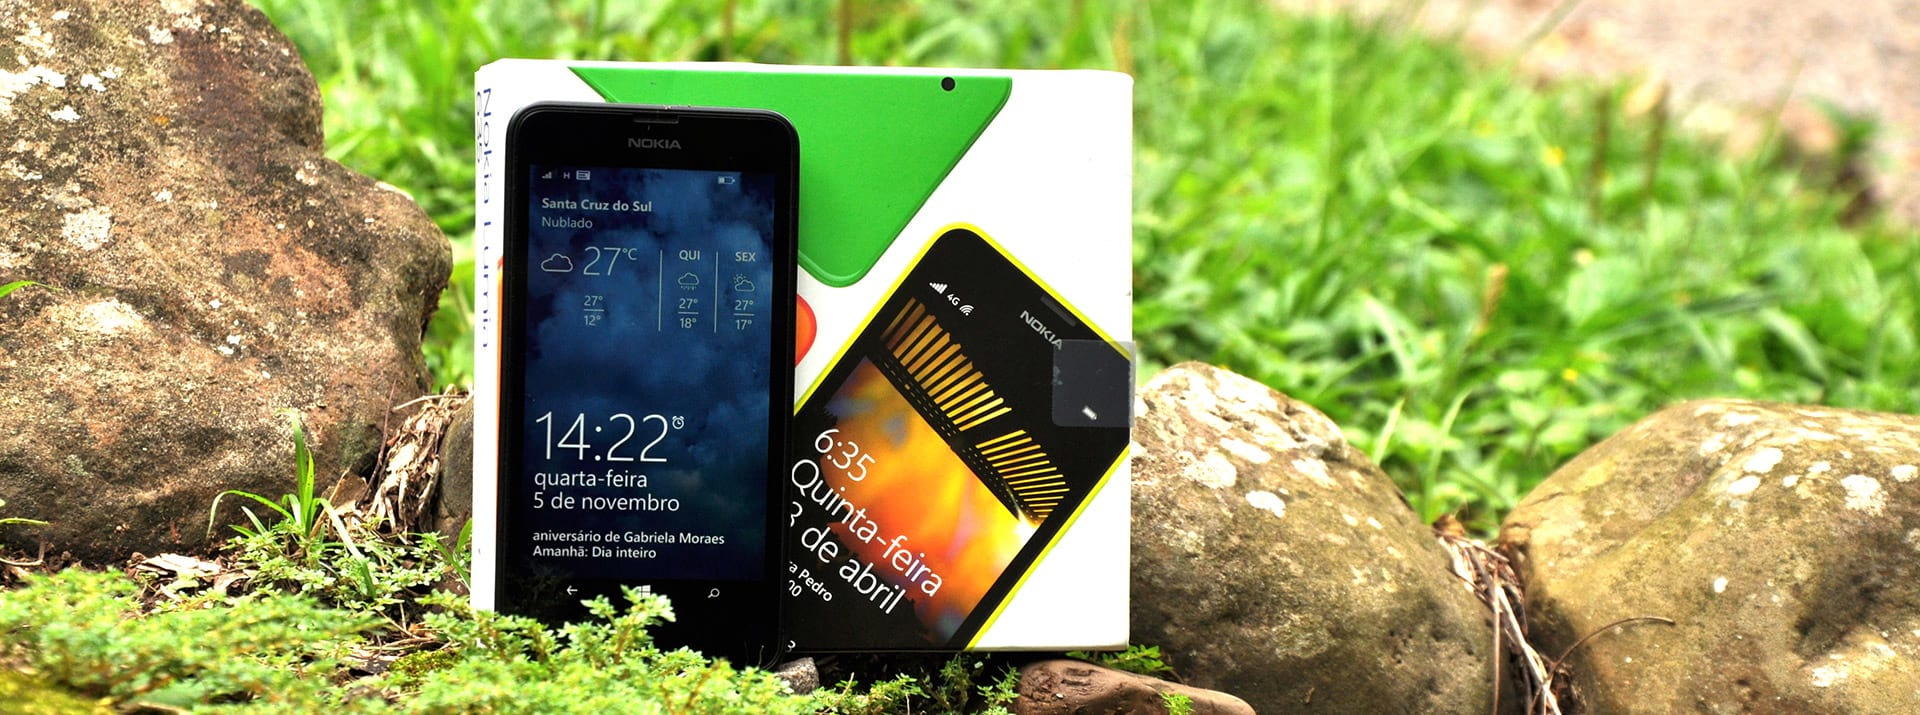 943eb3e6b11 Review Nokia Lumia 635